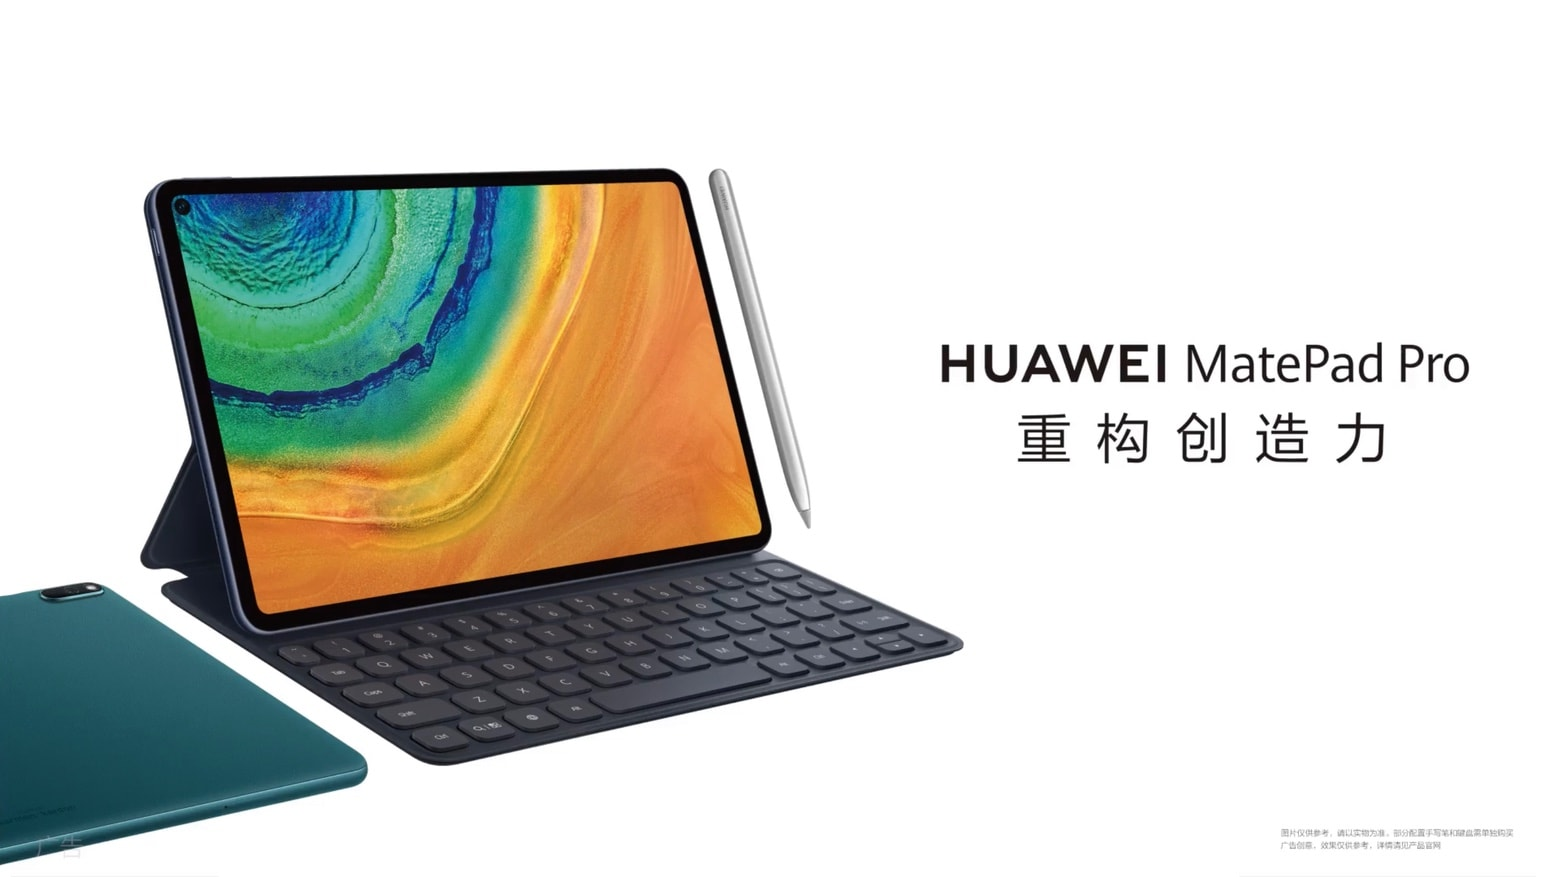 Huawei MatePad Pro is like an iPad Pro, but cheaper